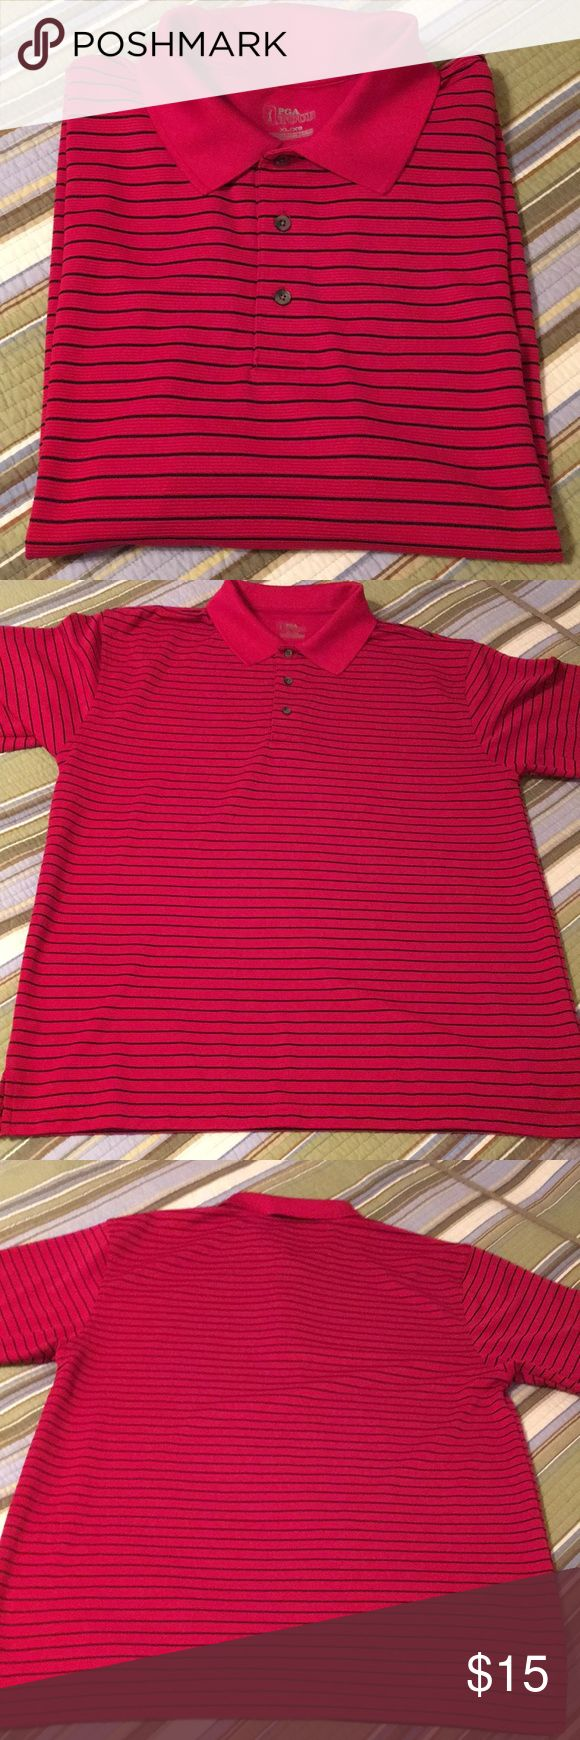 PGA Tour golf shirt Red and black golf shirt. X Large PGA Tour Shirts